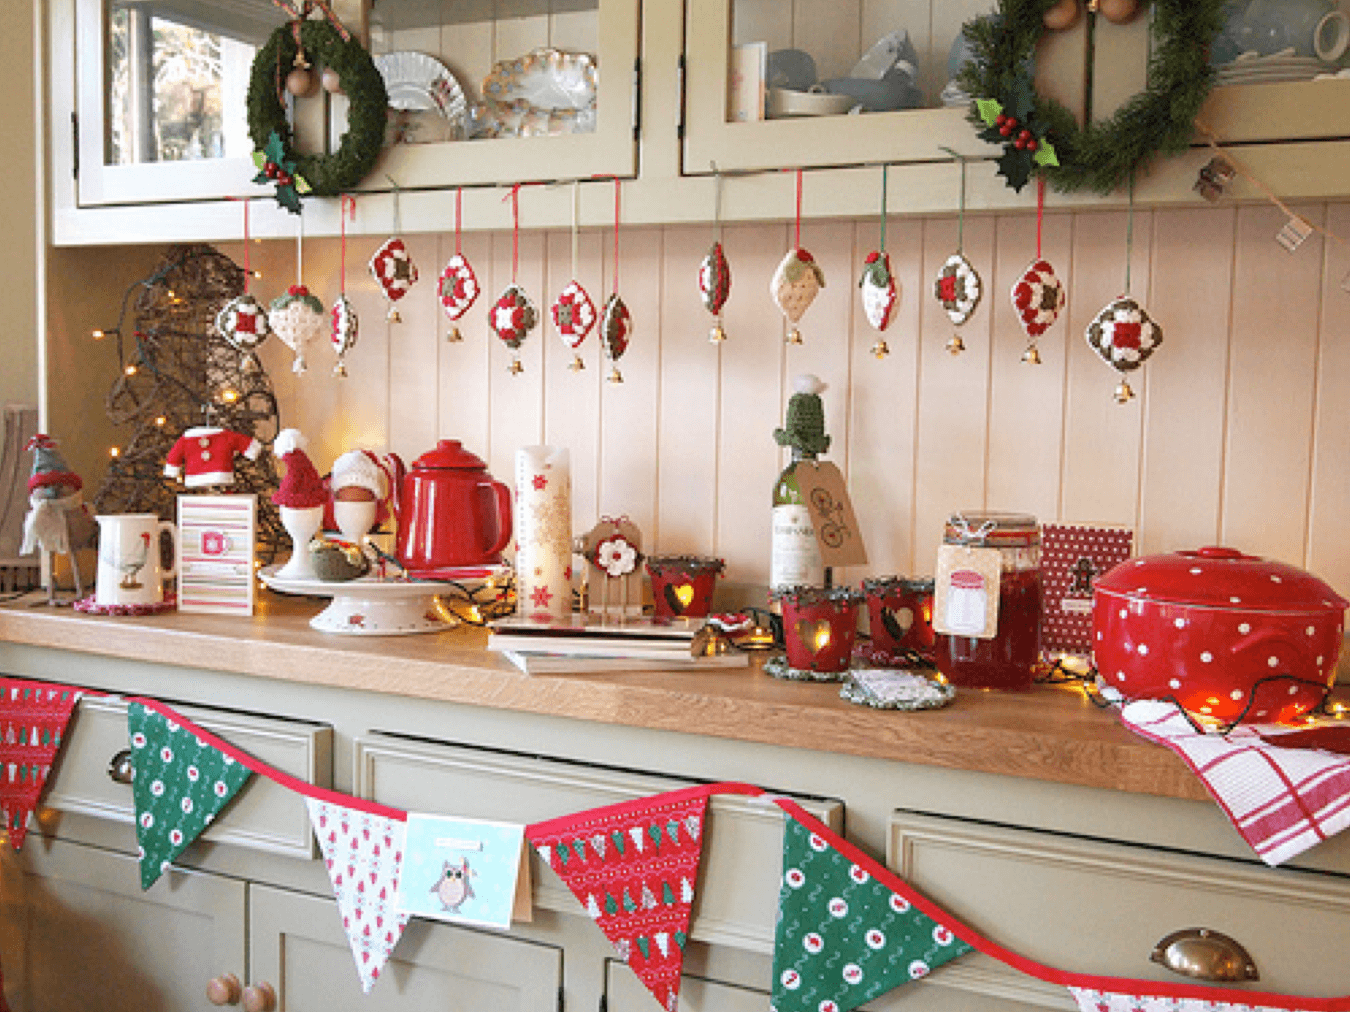 A Cosy Christmas Kitchen Design